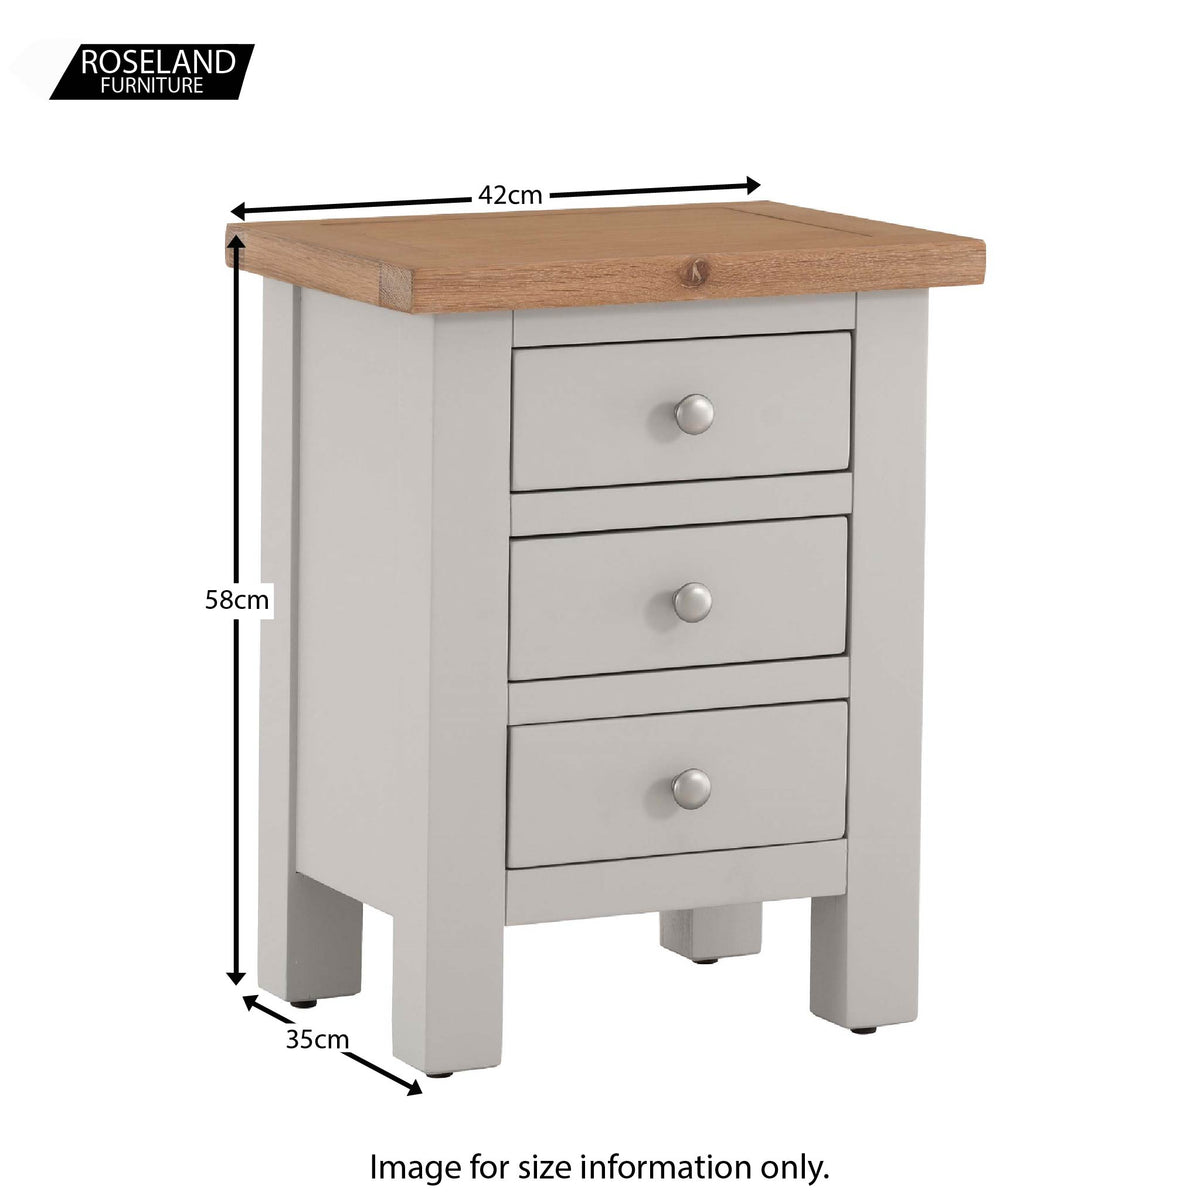 Dimensions for Charlestown Grey Bedside Table with Oak Top by Roseland Furniture